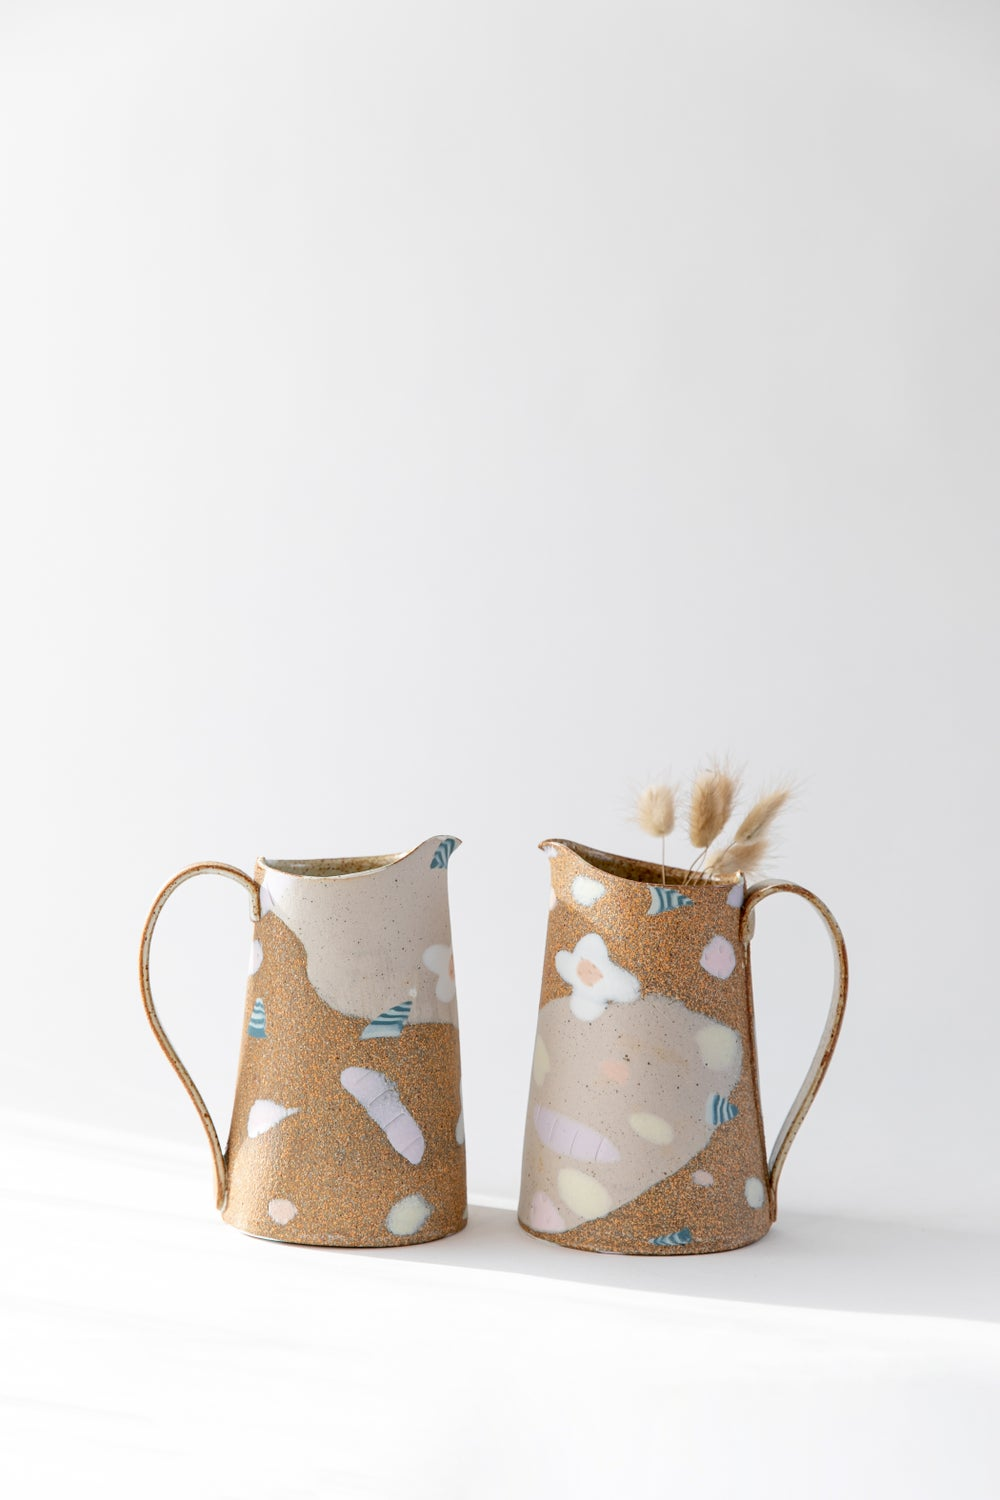 Image of Candy Pastel Flowers on Toasty Clay - Medium Pitcher